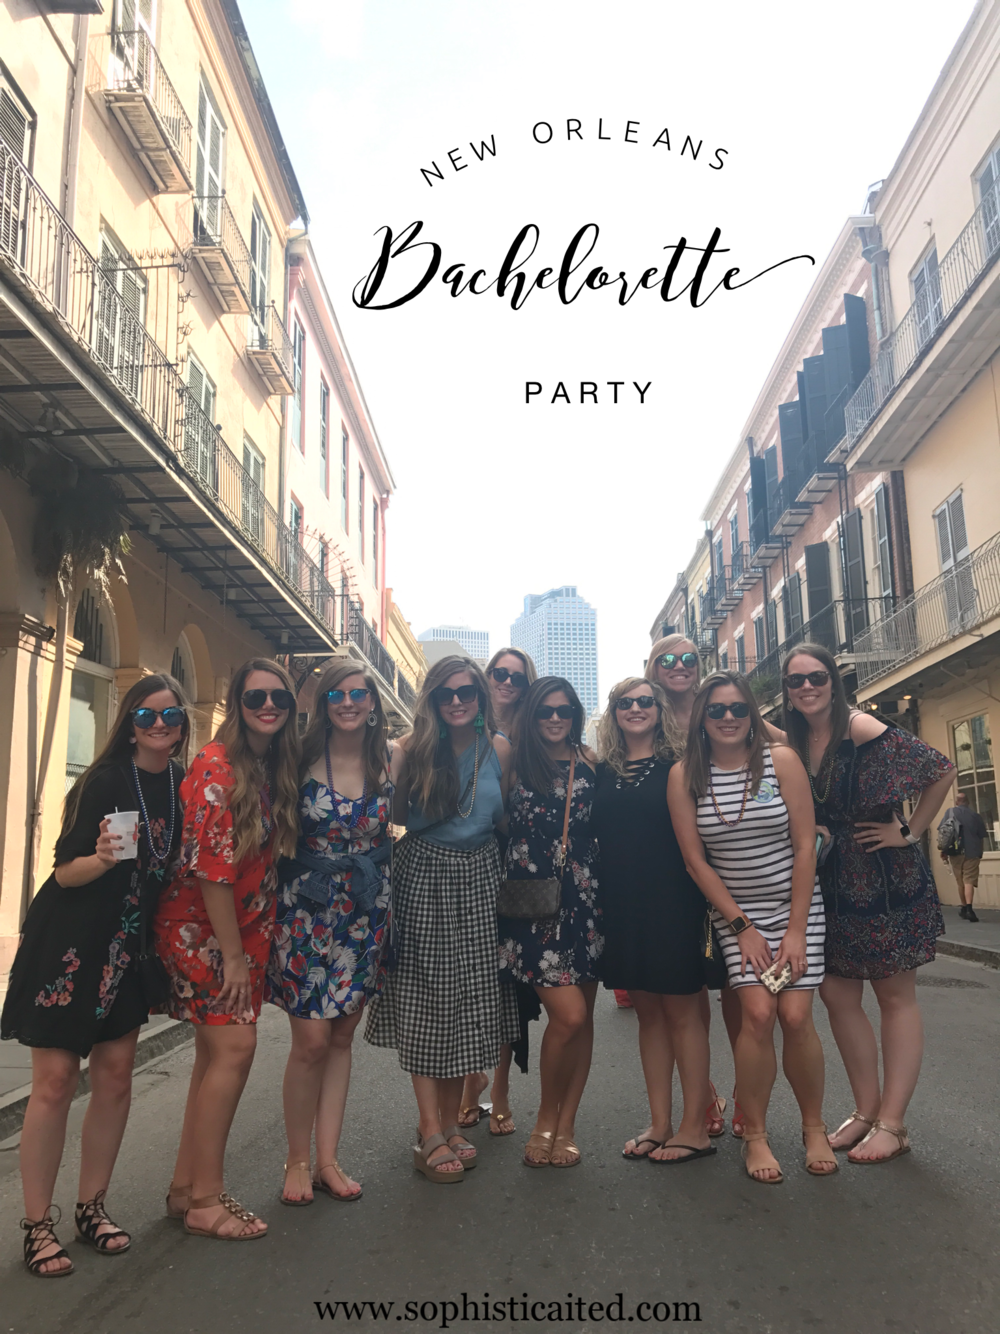 Plan a New Orleans Bachelorette Party